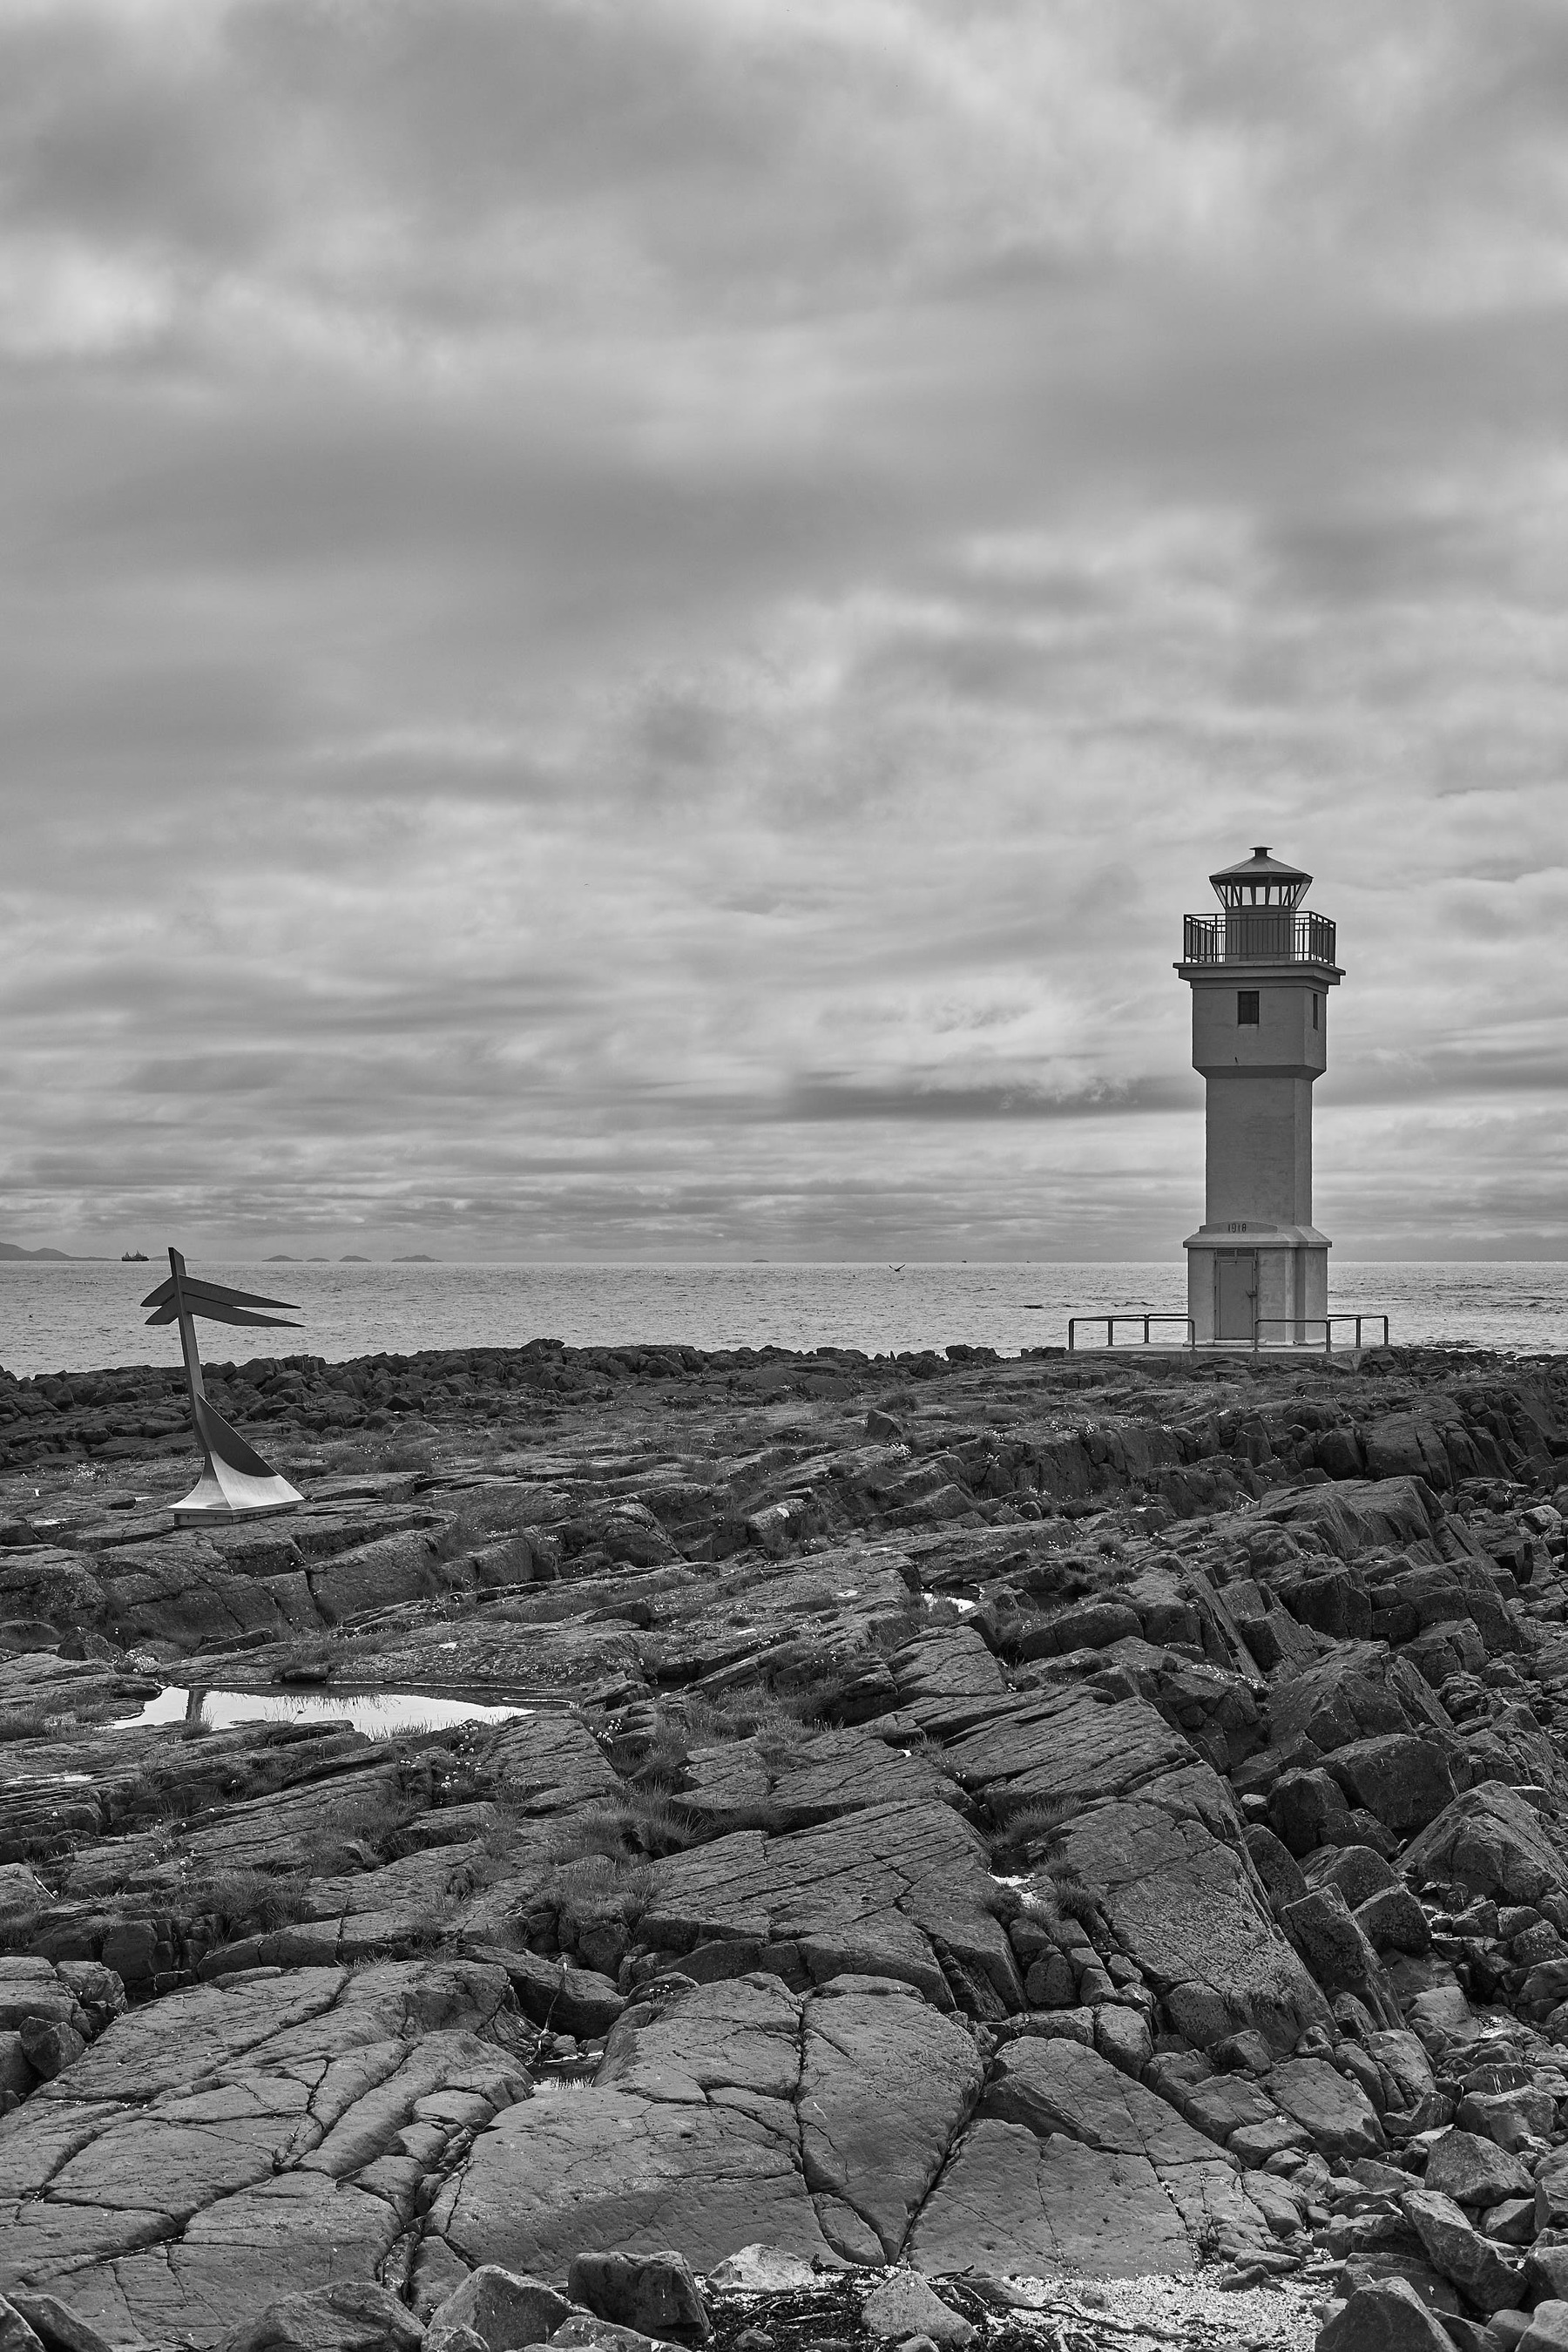 The old lighthouse against a cloudy sky with a rocky beach in the foreground